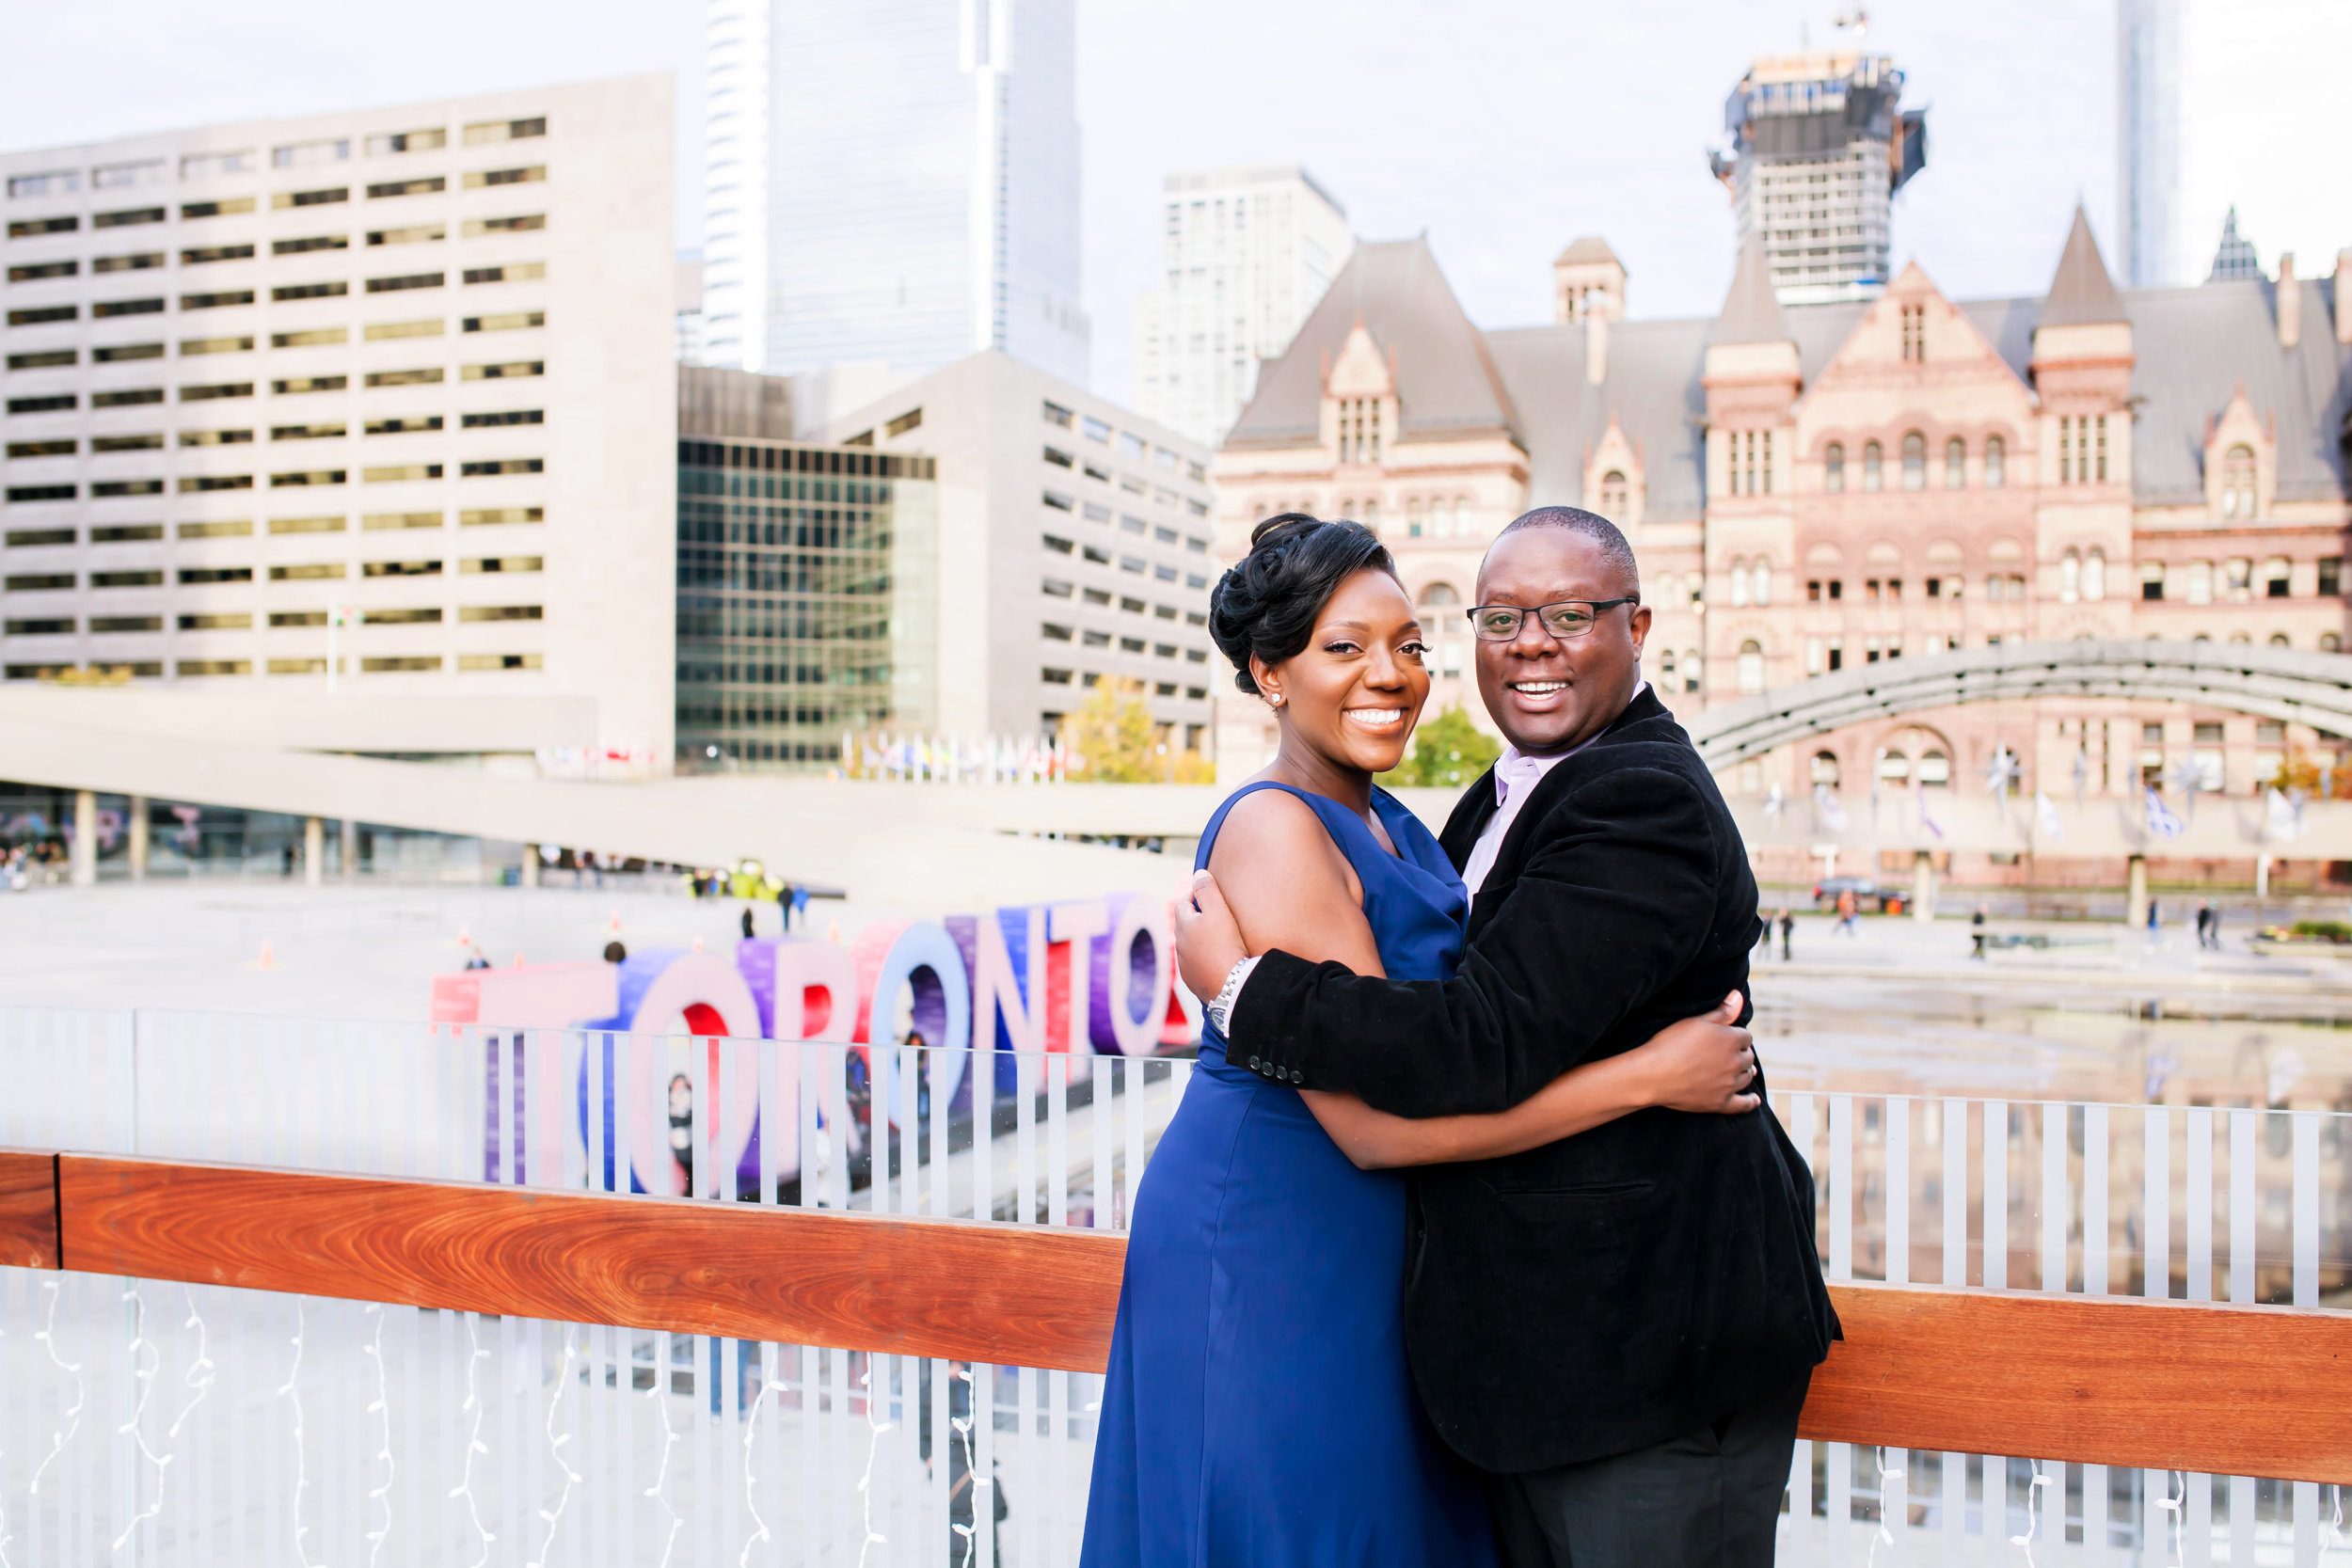 African Canadian Kenyan Engagement Shoot Nathan Phillips square Toronto sign Old City Hall Engagement Photography Toronto Kenyan Kenya Osgoode Hall Toronto Downtown location Photographer Elegant photo ideas Ontario Canada African Black Couple Best Photographer Karimah Gheddai Photgoraphy